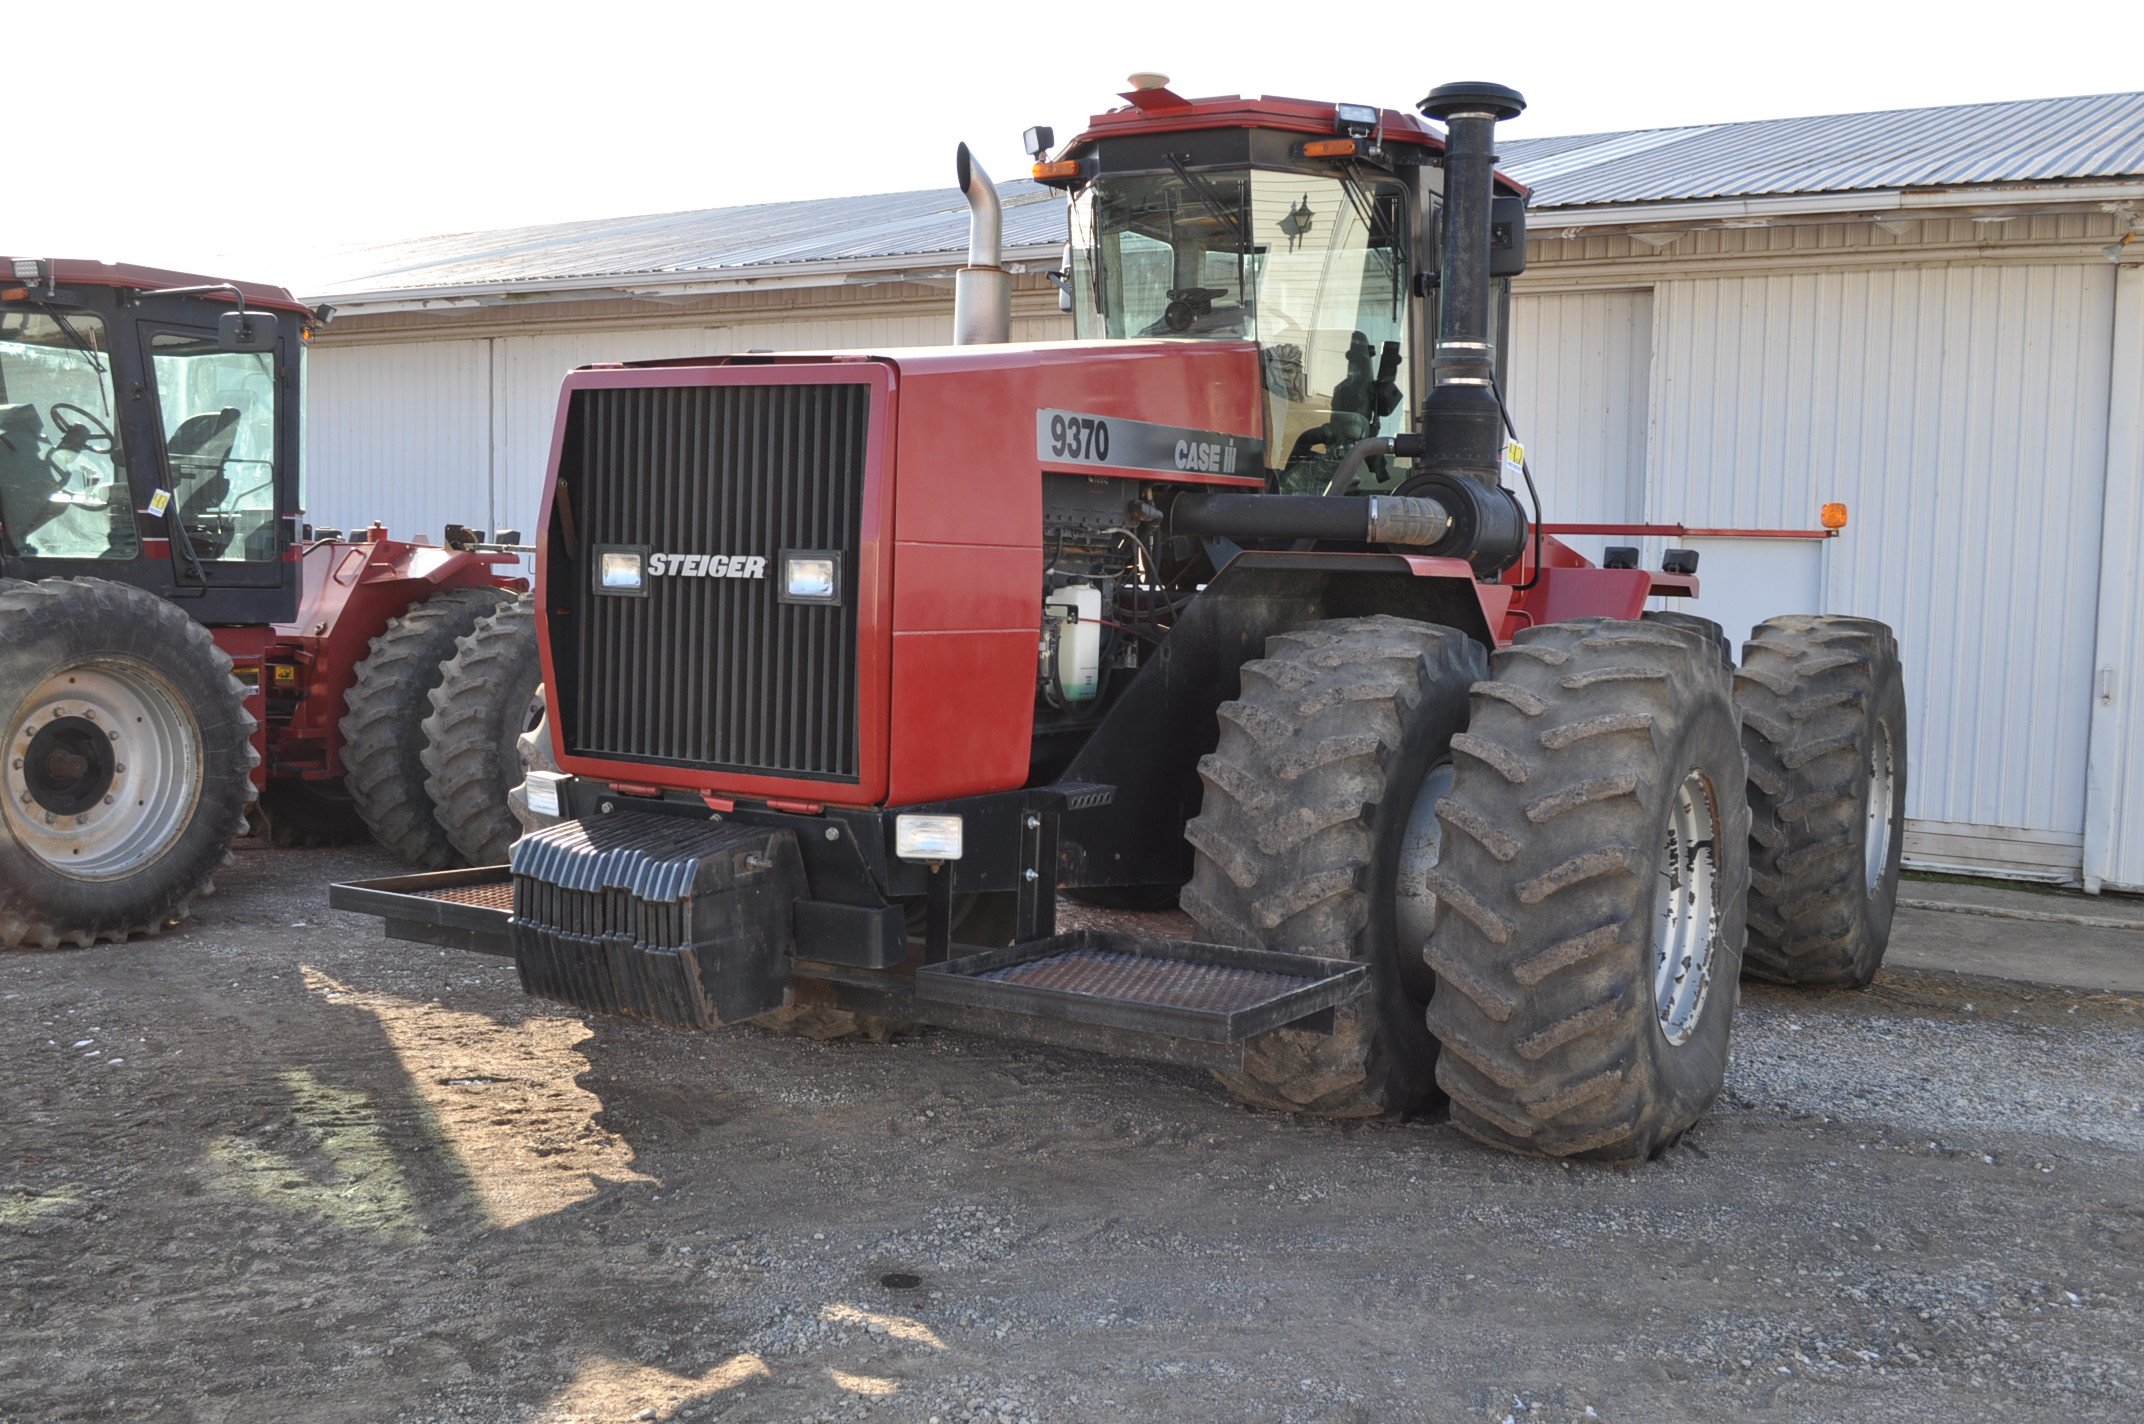 Case IH 9370 4WD tractor, 24.5R32 duals, power shift, skip shift, 4 hyd remotes, 4622 hrs, front - Image 2 of 23